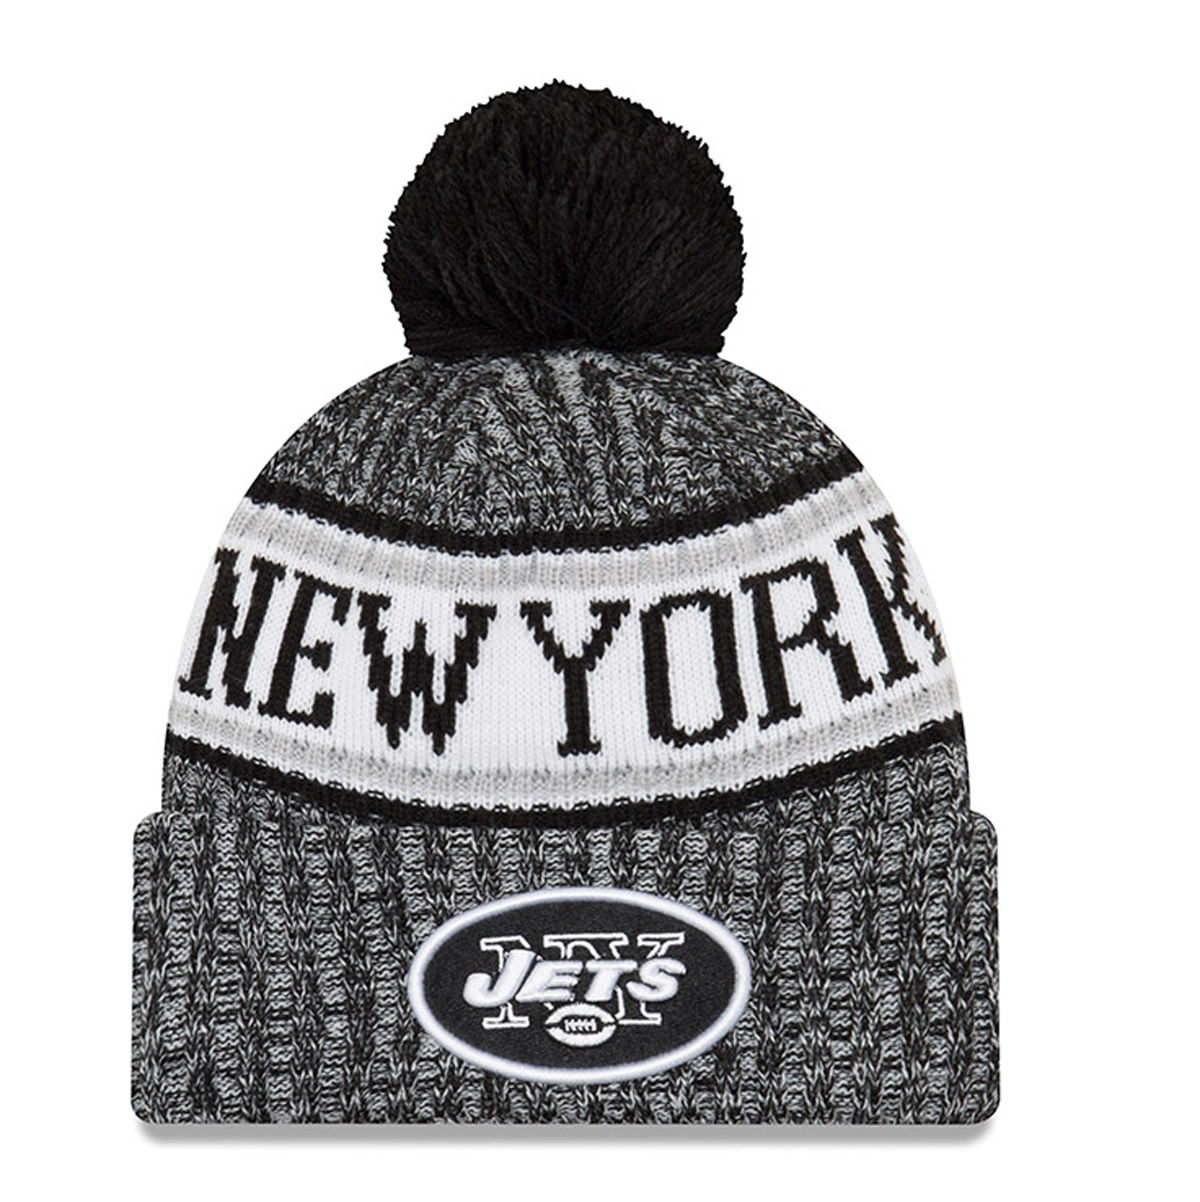 New York Jets Adult 2018 Sideline Pom Knit Hat